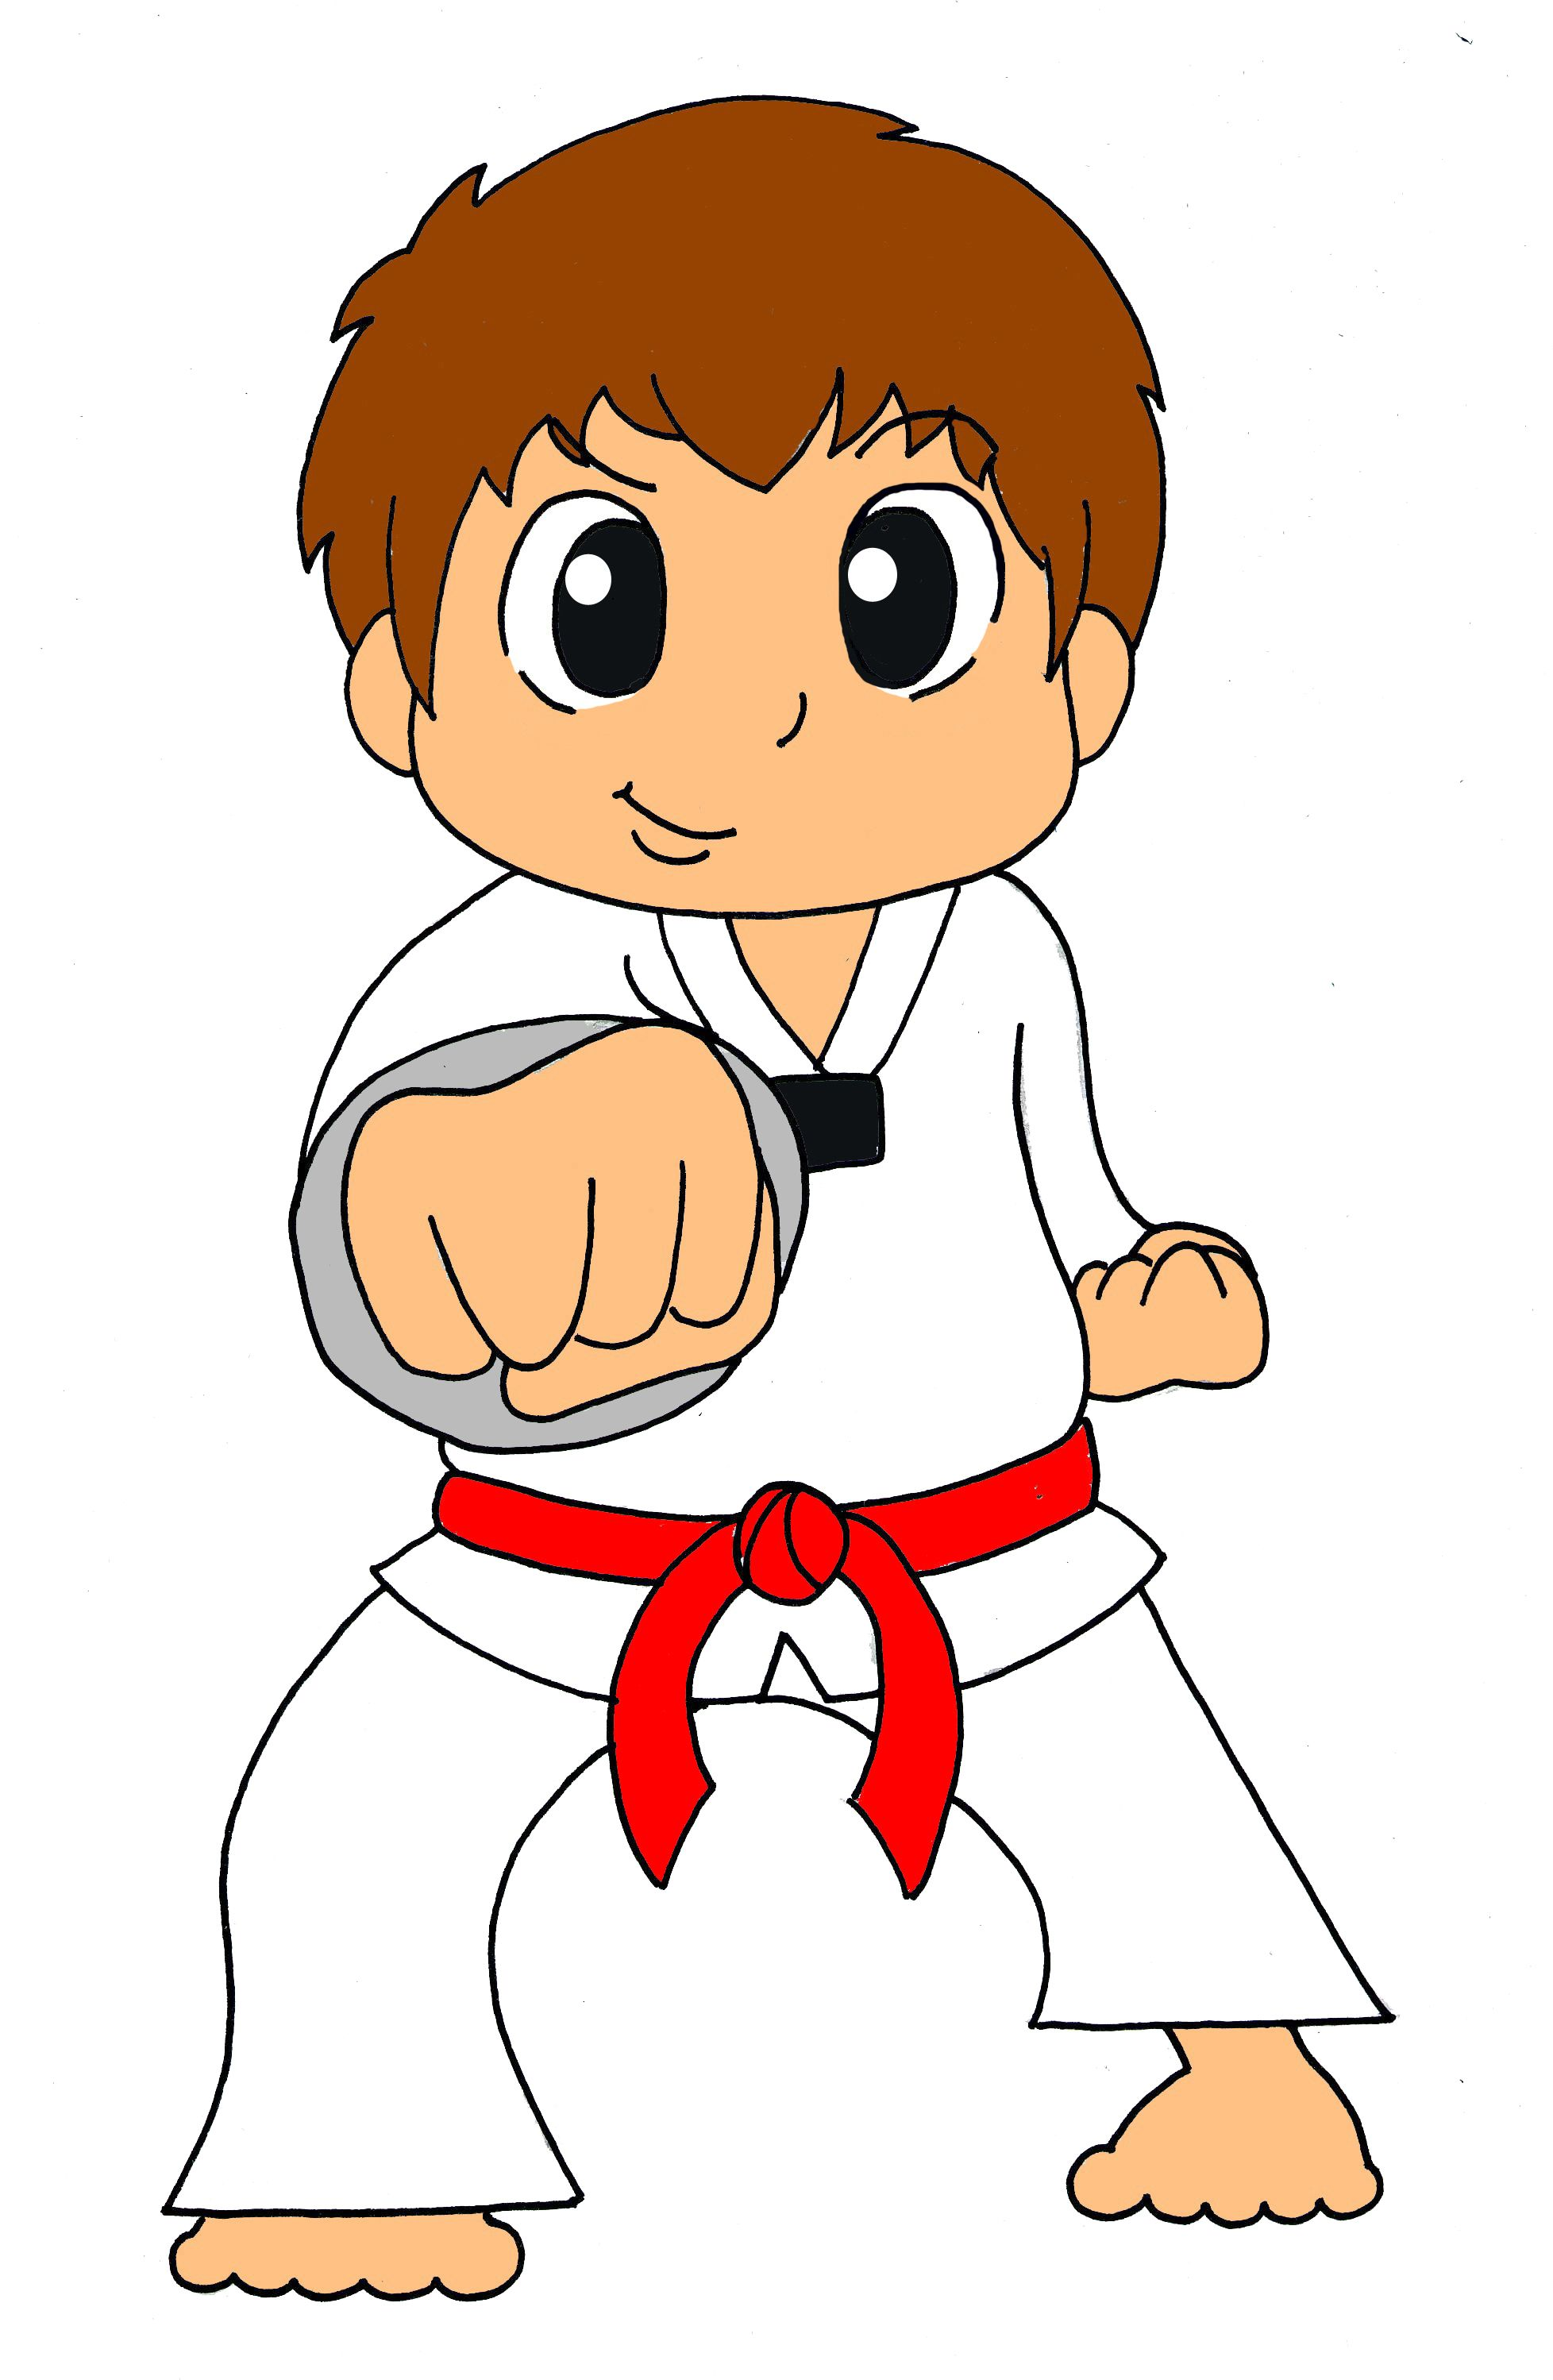 image result for taekwondo clip art taekowndo pinterest clip art rh pinterest com tae kwon do clip art free tae kwon do clip art free